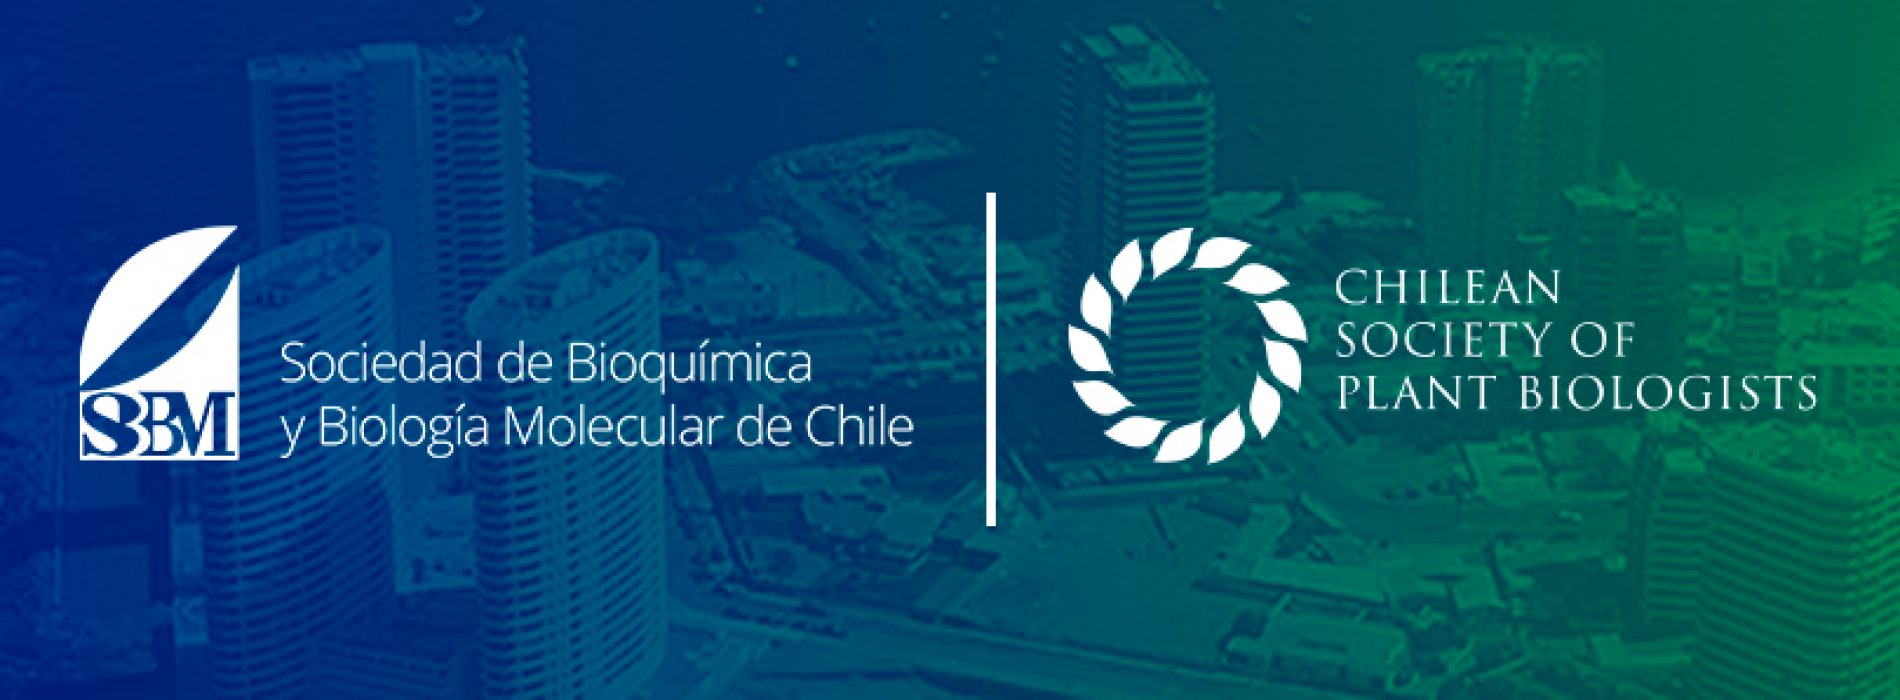 Congress information society for Biochemistry and Molecular Biology of Chile 2019